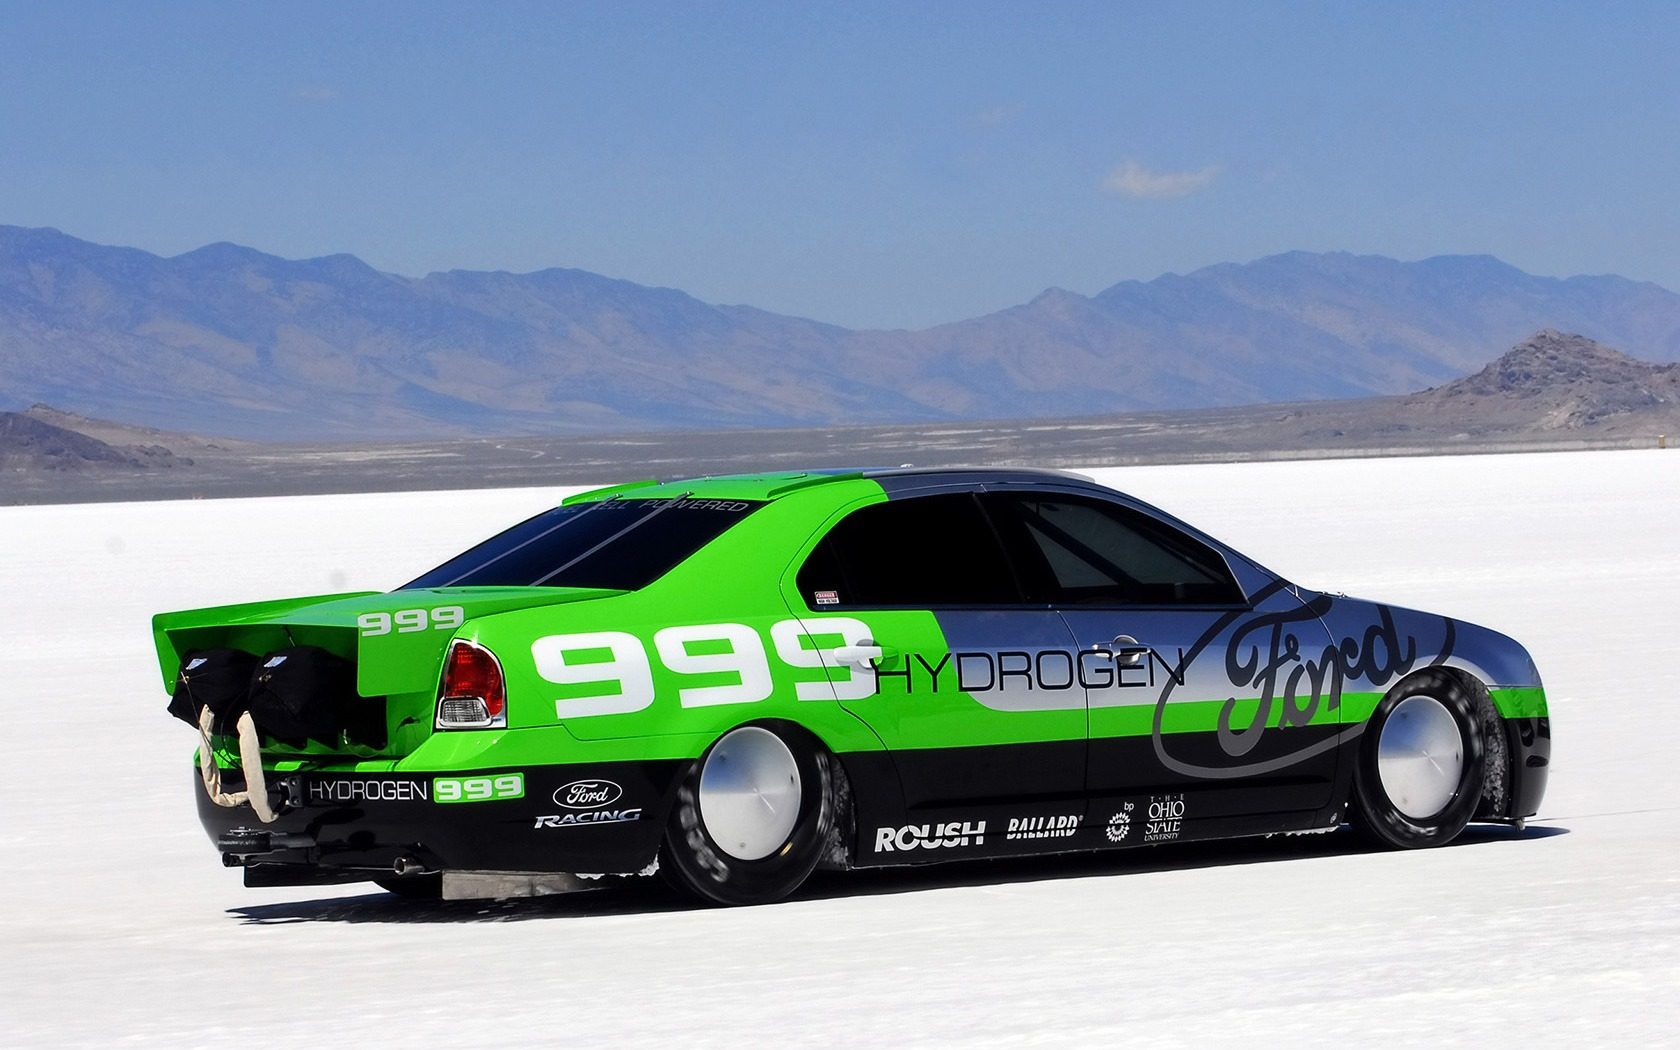 3d обои Ford Fusion Hydrogen-999-Land Speed Record Ford Fusion Hydrogen 999 Marks Milestone 6 в горах  снег # 80412